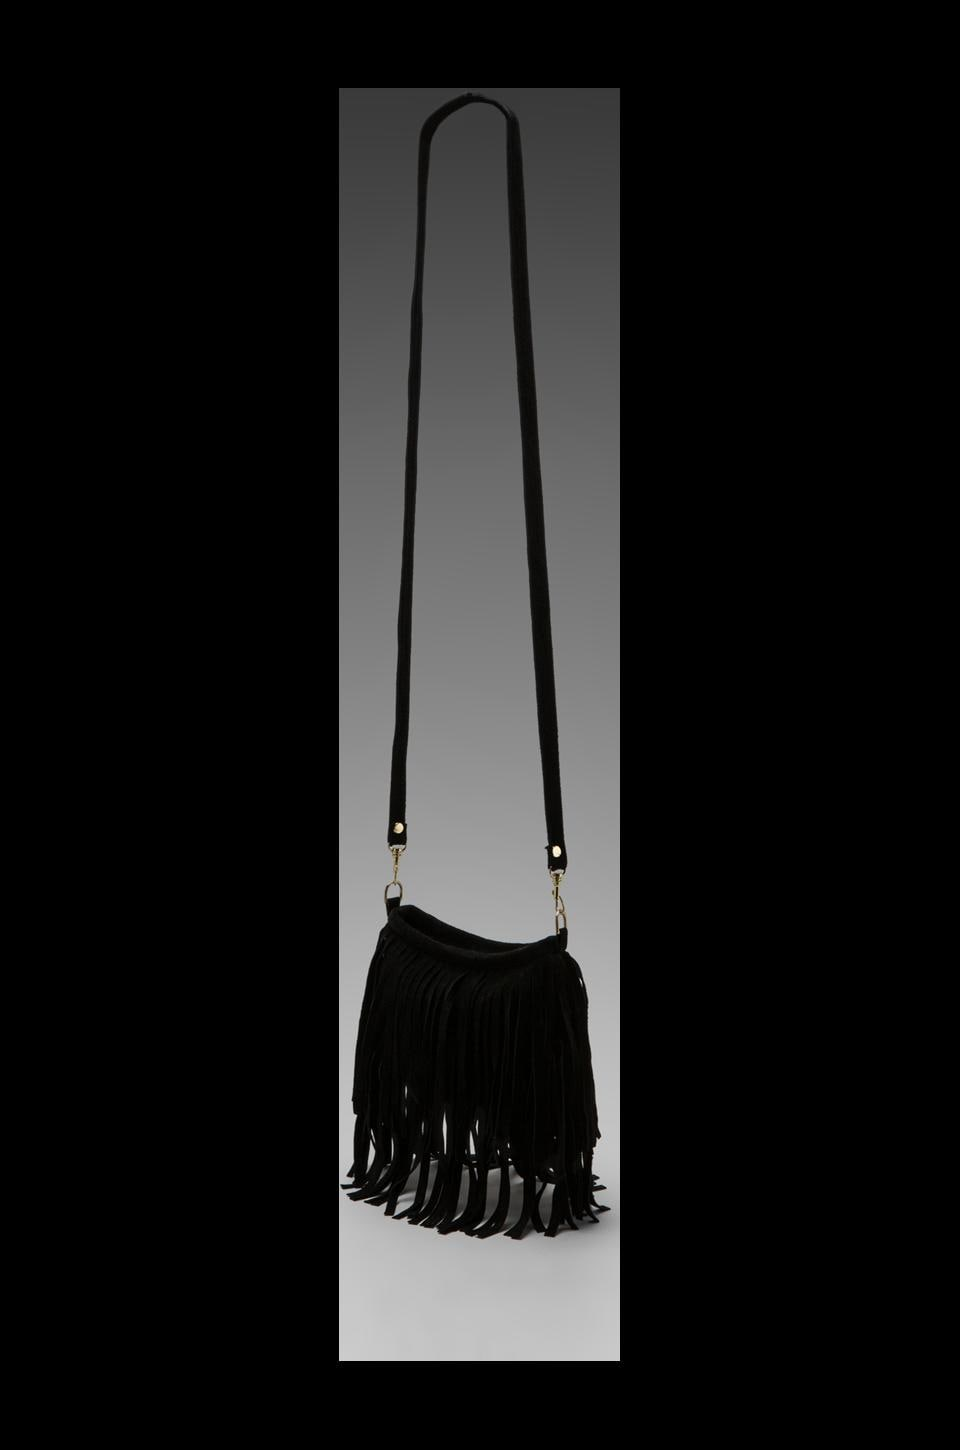 JJ Winters Small Fringe Bag in Black